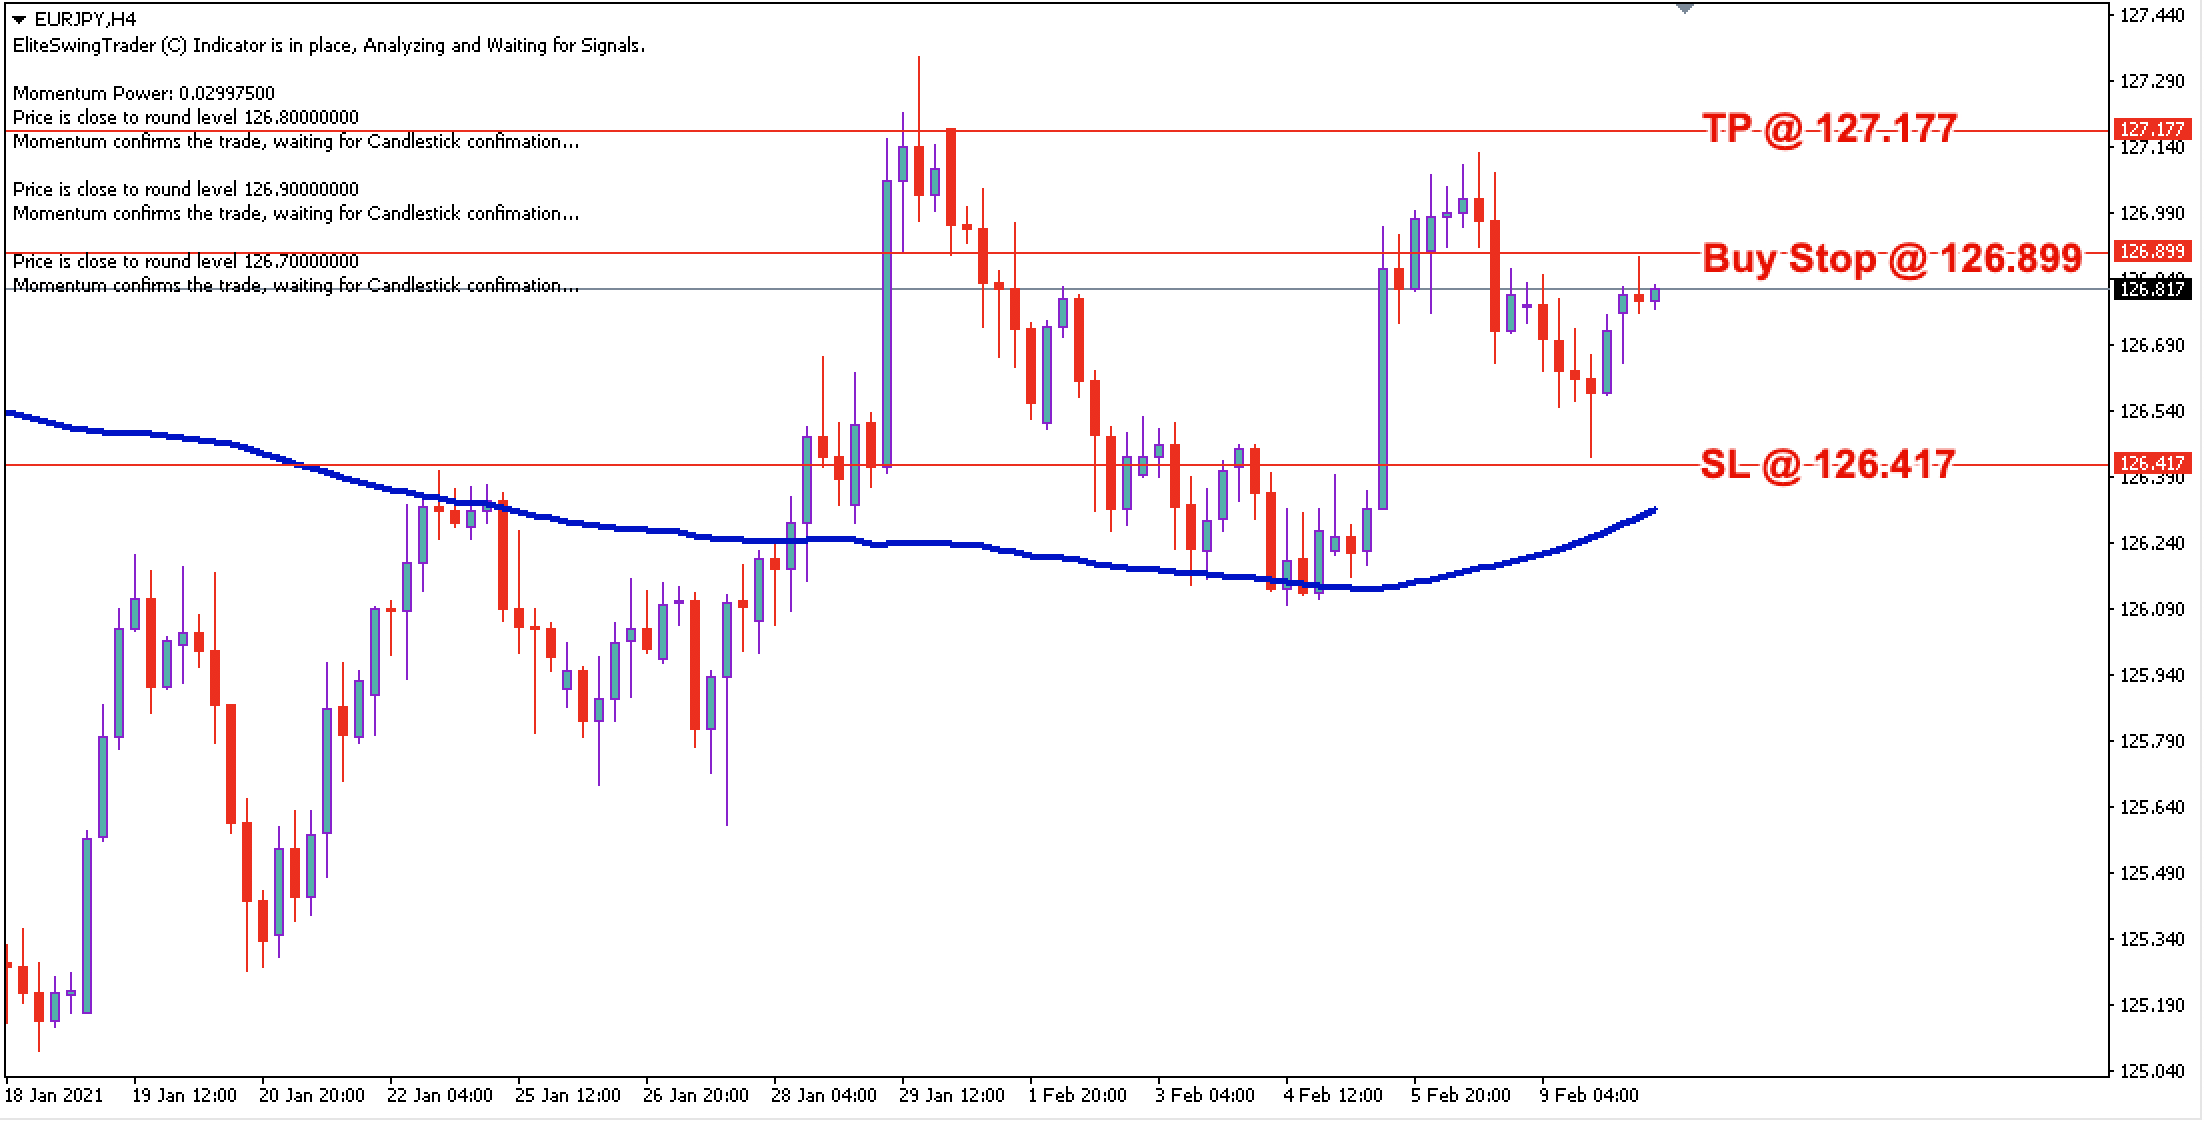 EUR/JPY Daily Price Forecast - 10th Feb 2021